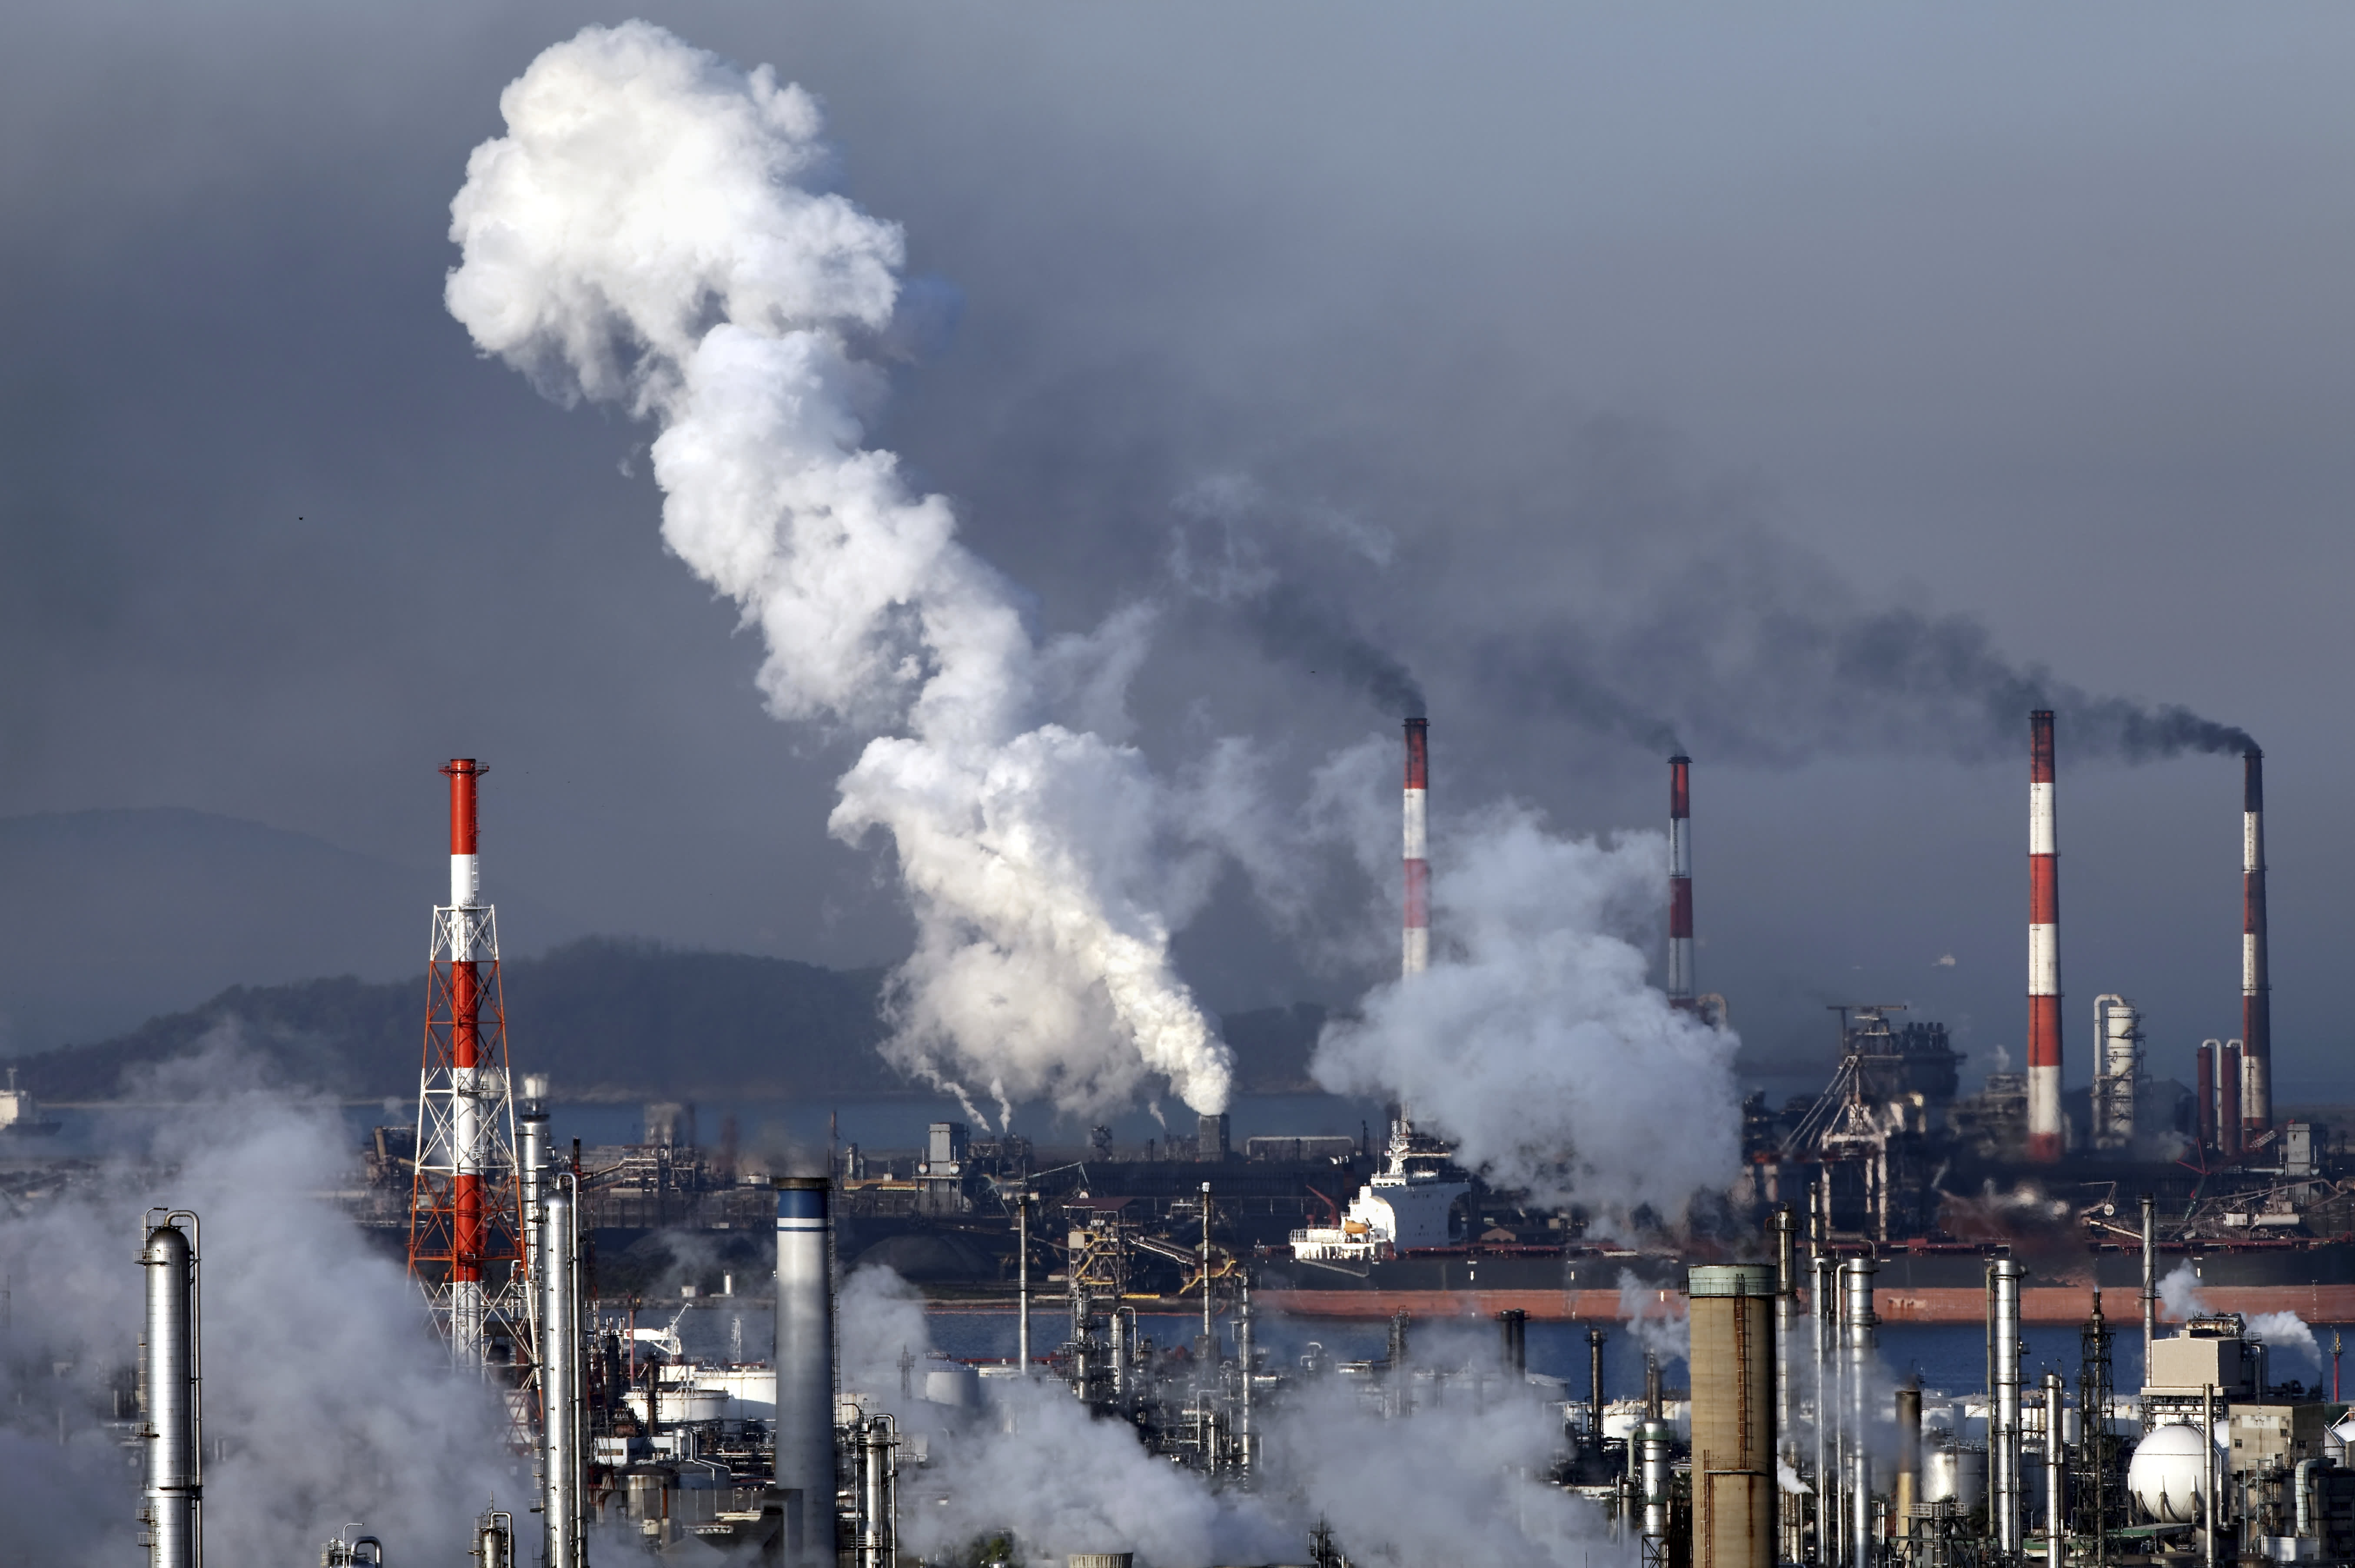 A carbon tax is 'single most powerful' way to combat climate change, IMF says